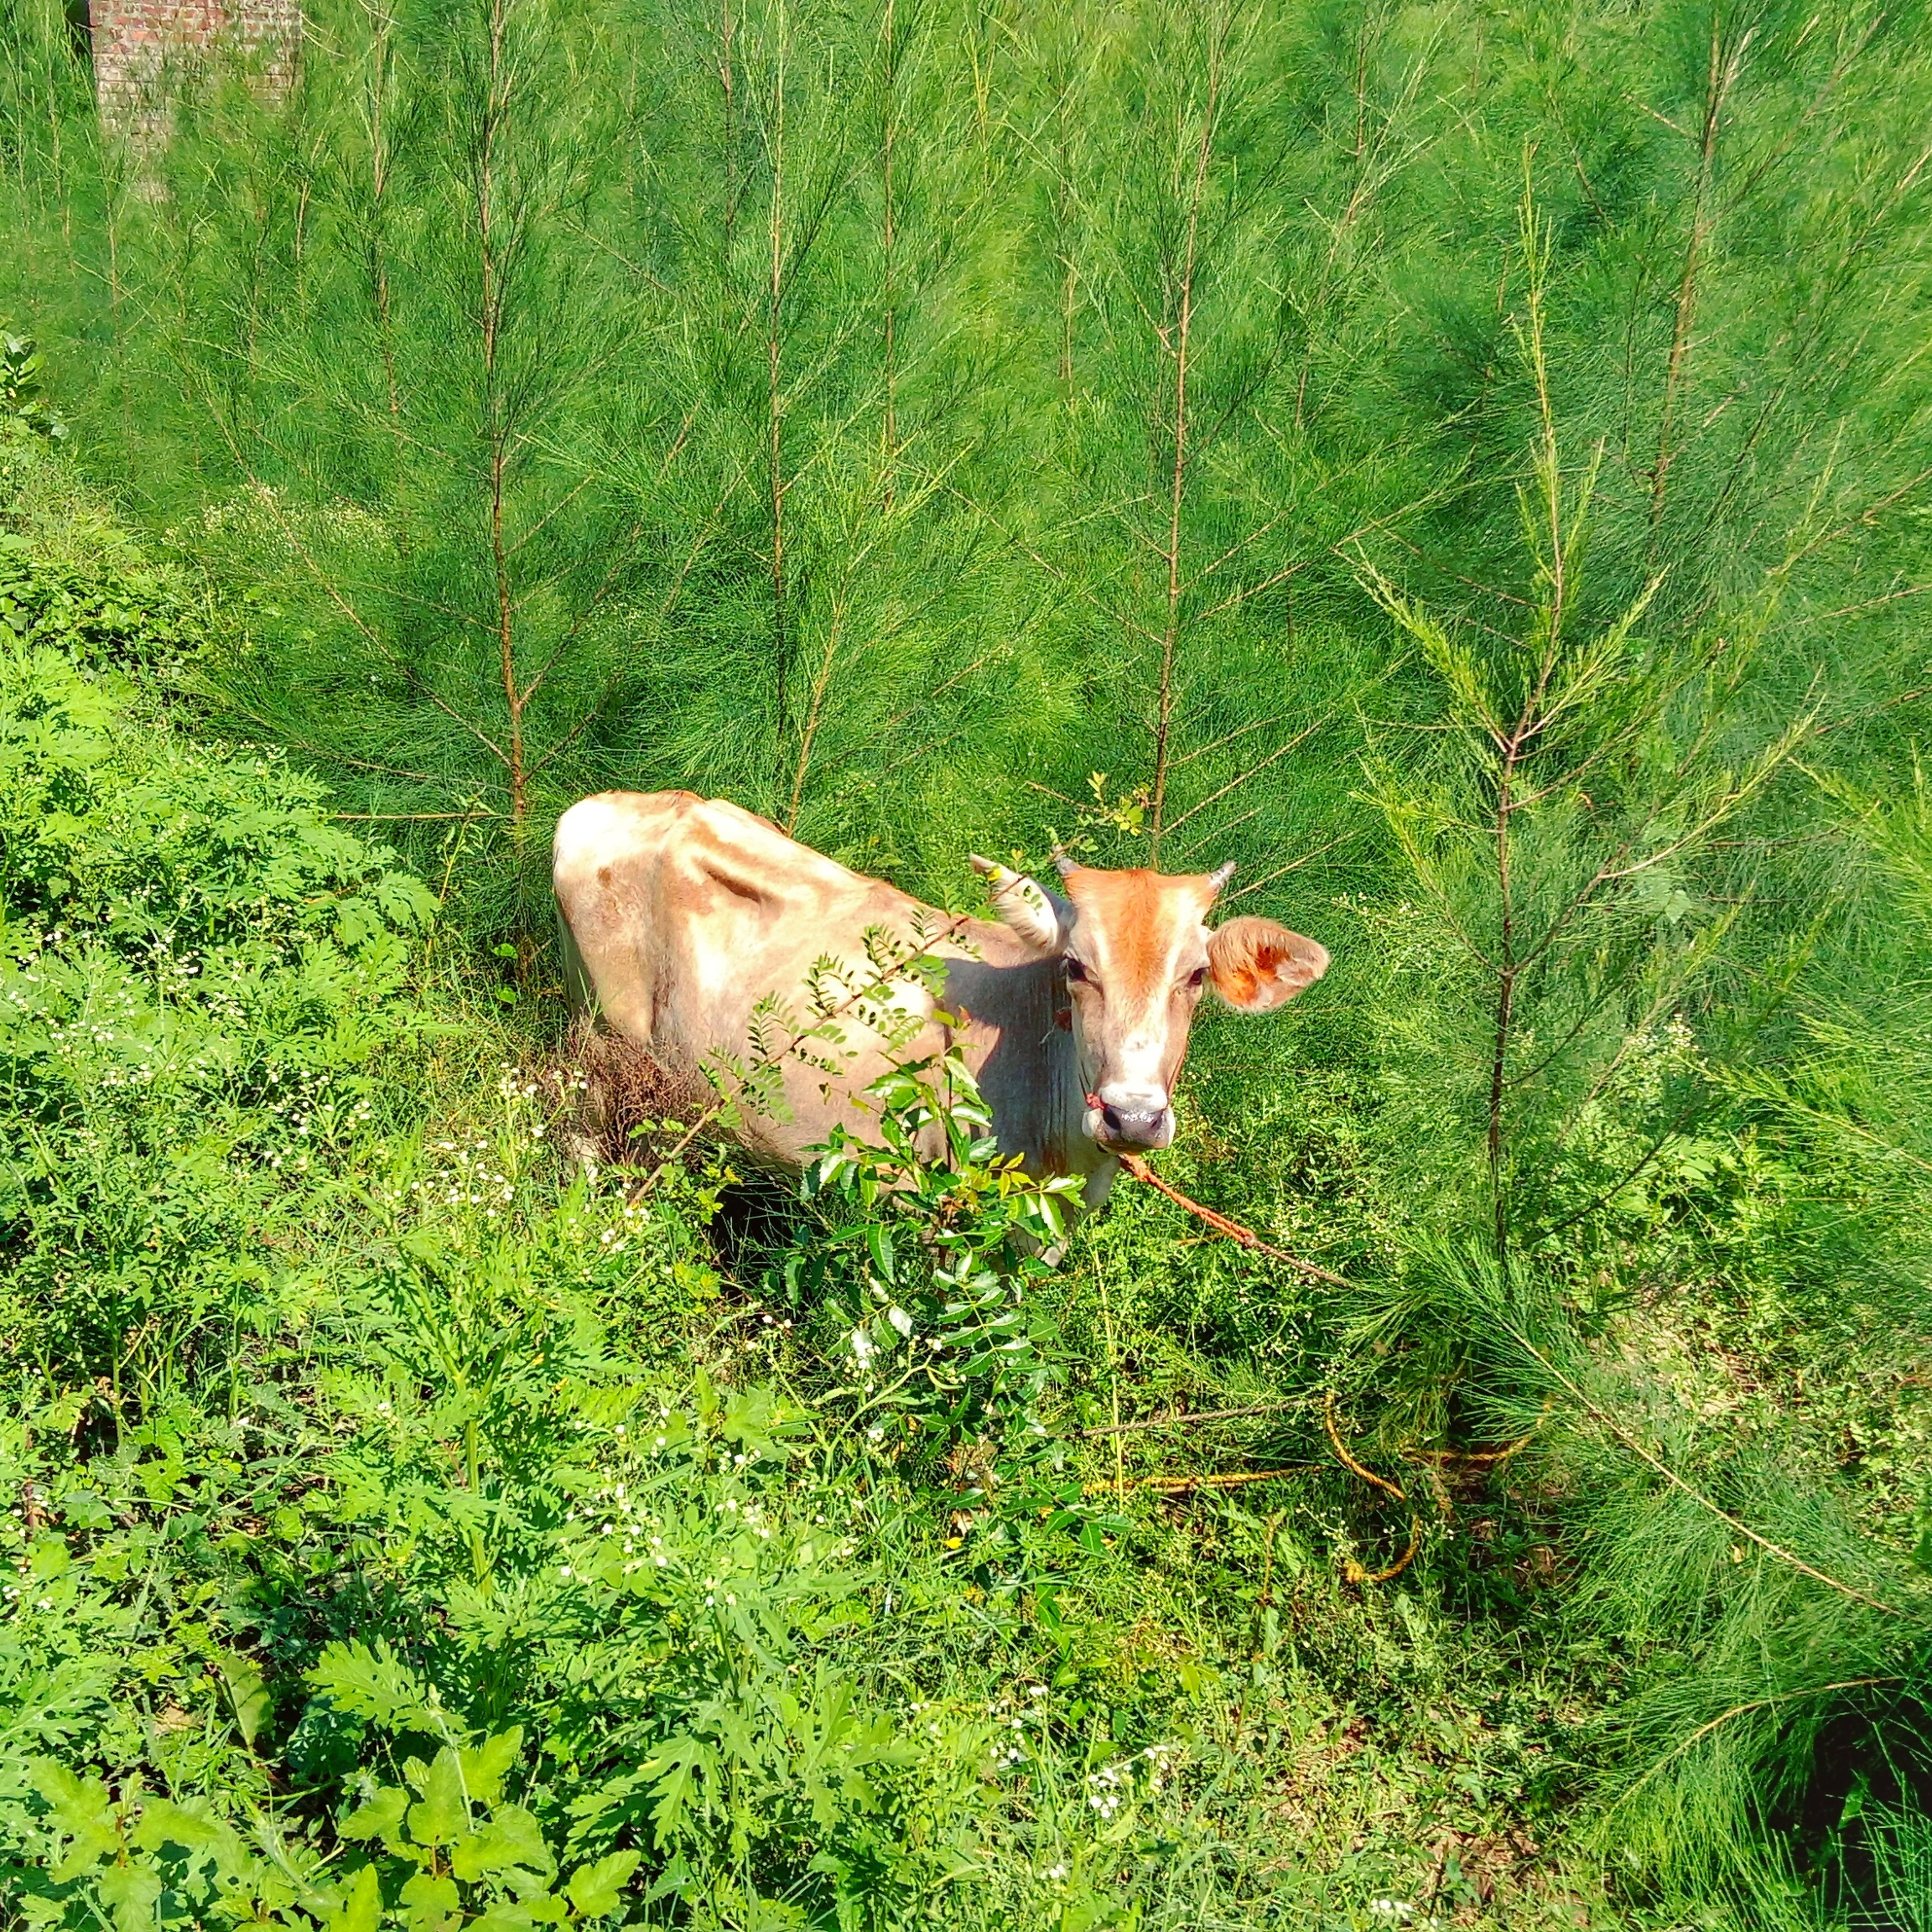 Cow surrounded with lush foliage